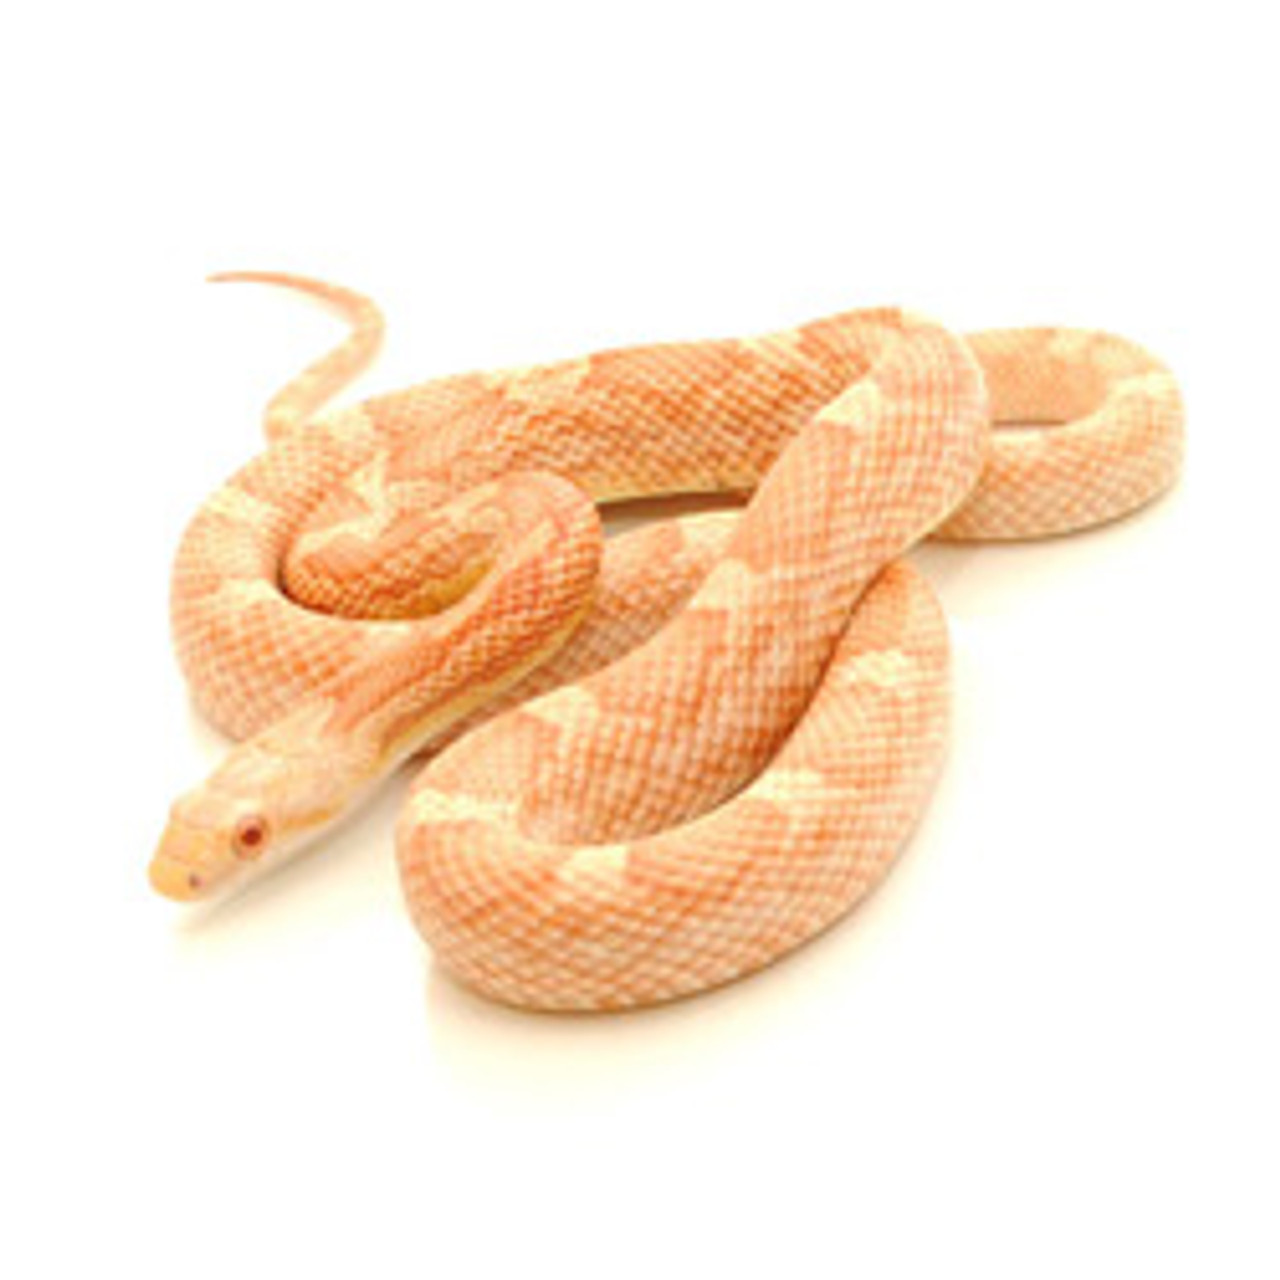 Albino Black Rat Snake (Pantherophis obsoletus)